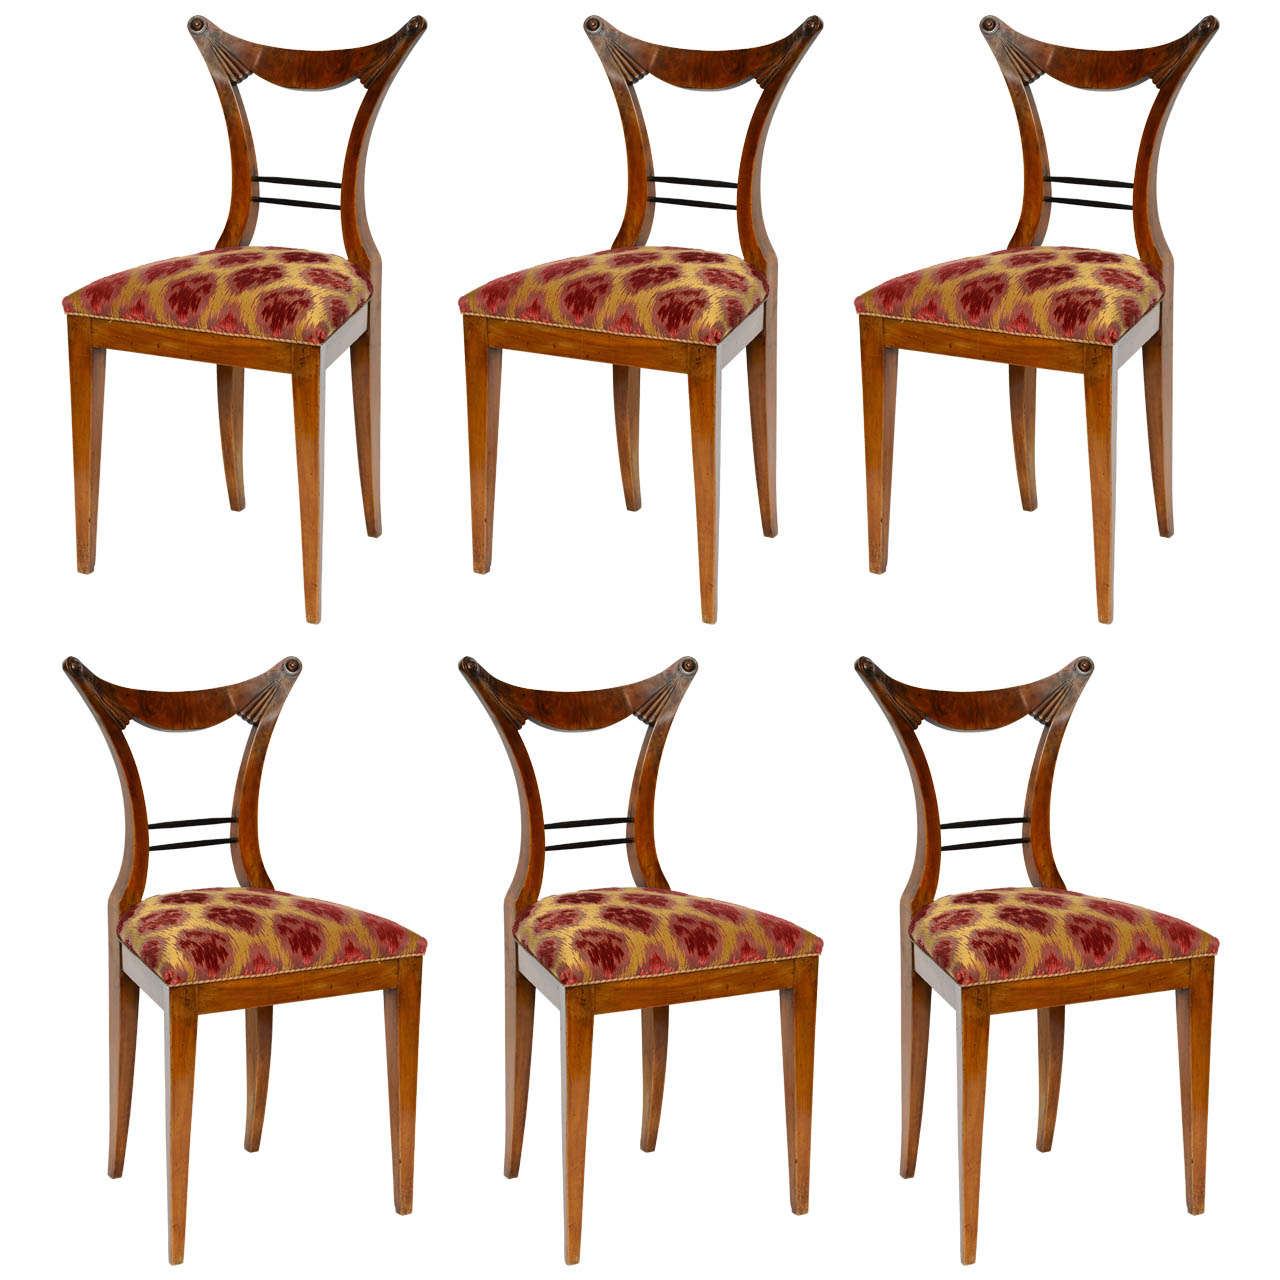 Set of Six Biedermeier Dining Chairs, Josef Danhauser, Vienna